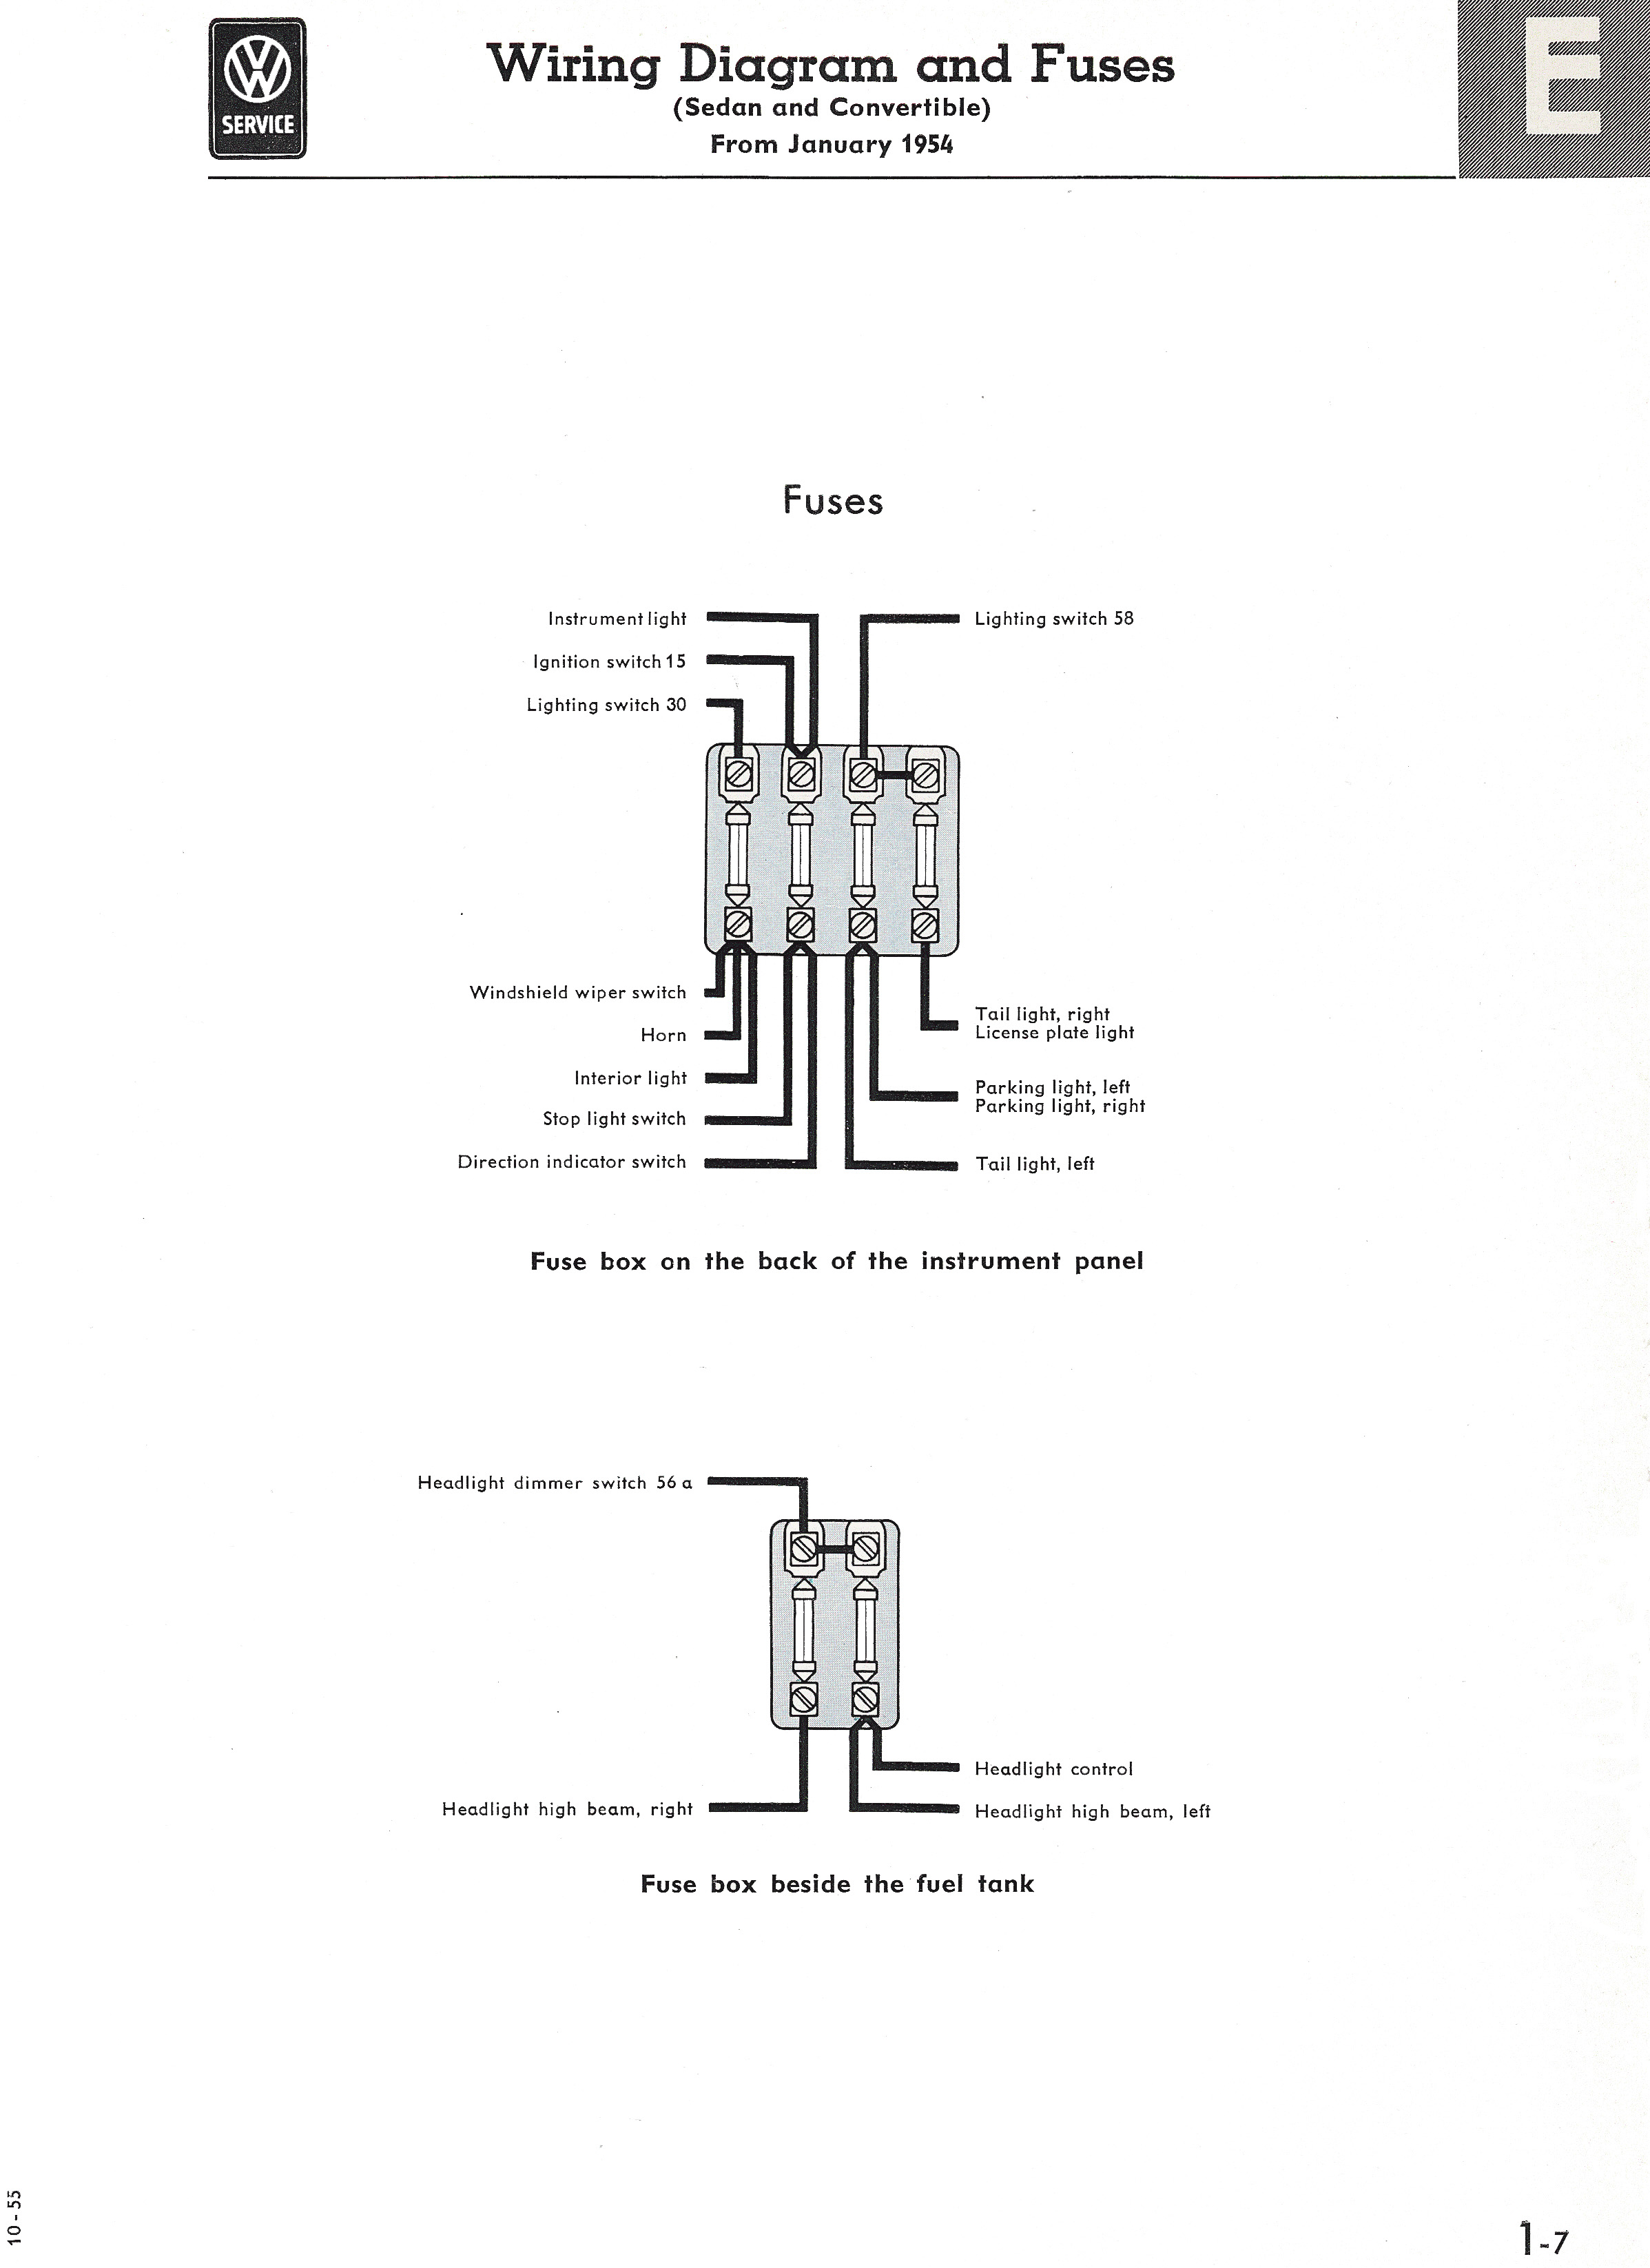 Type 1 Wiring Diagrams Diagram Of 1972 Vw Bug Engine